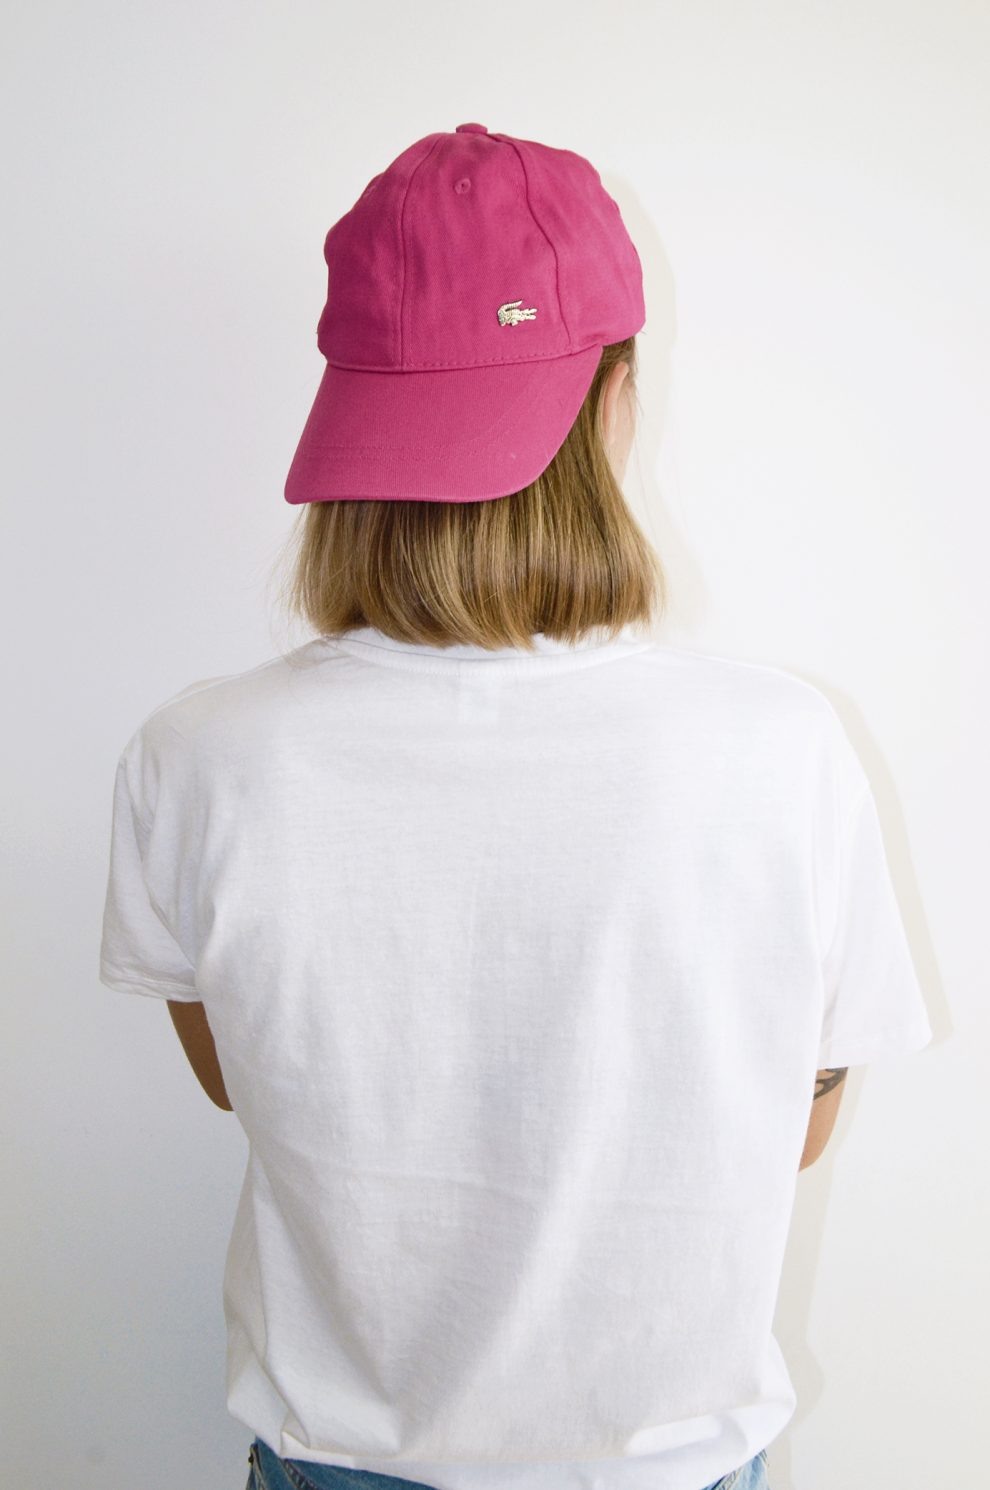 fa618b27965 Out of stock. Lacoste pink baseball cap